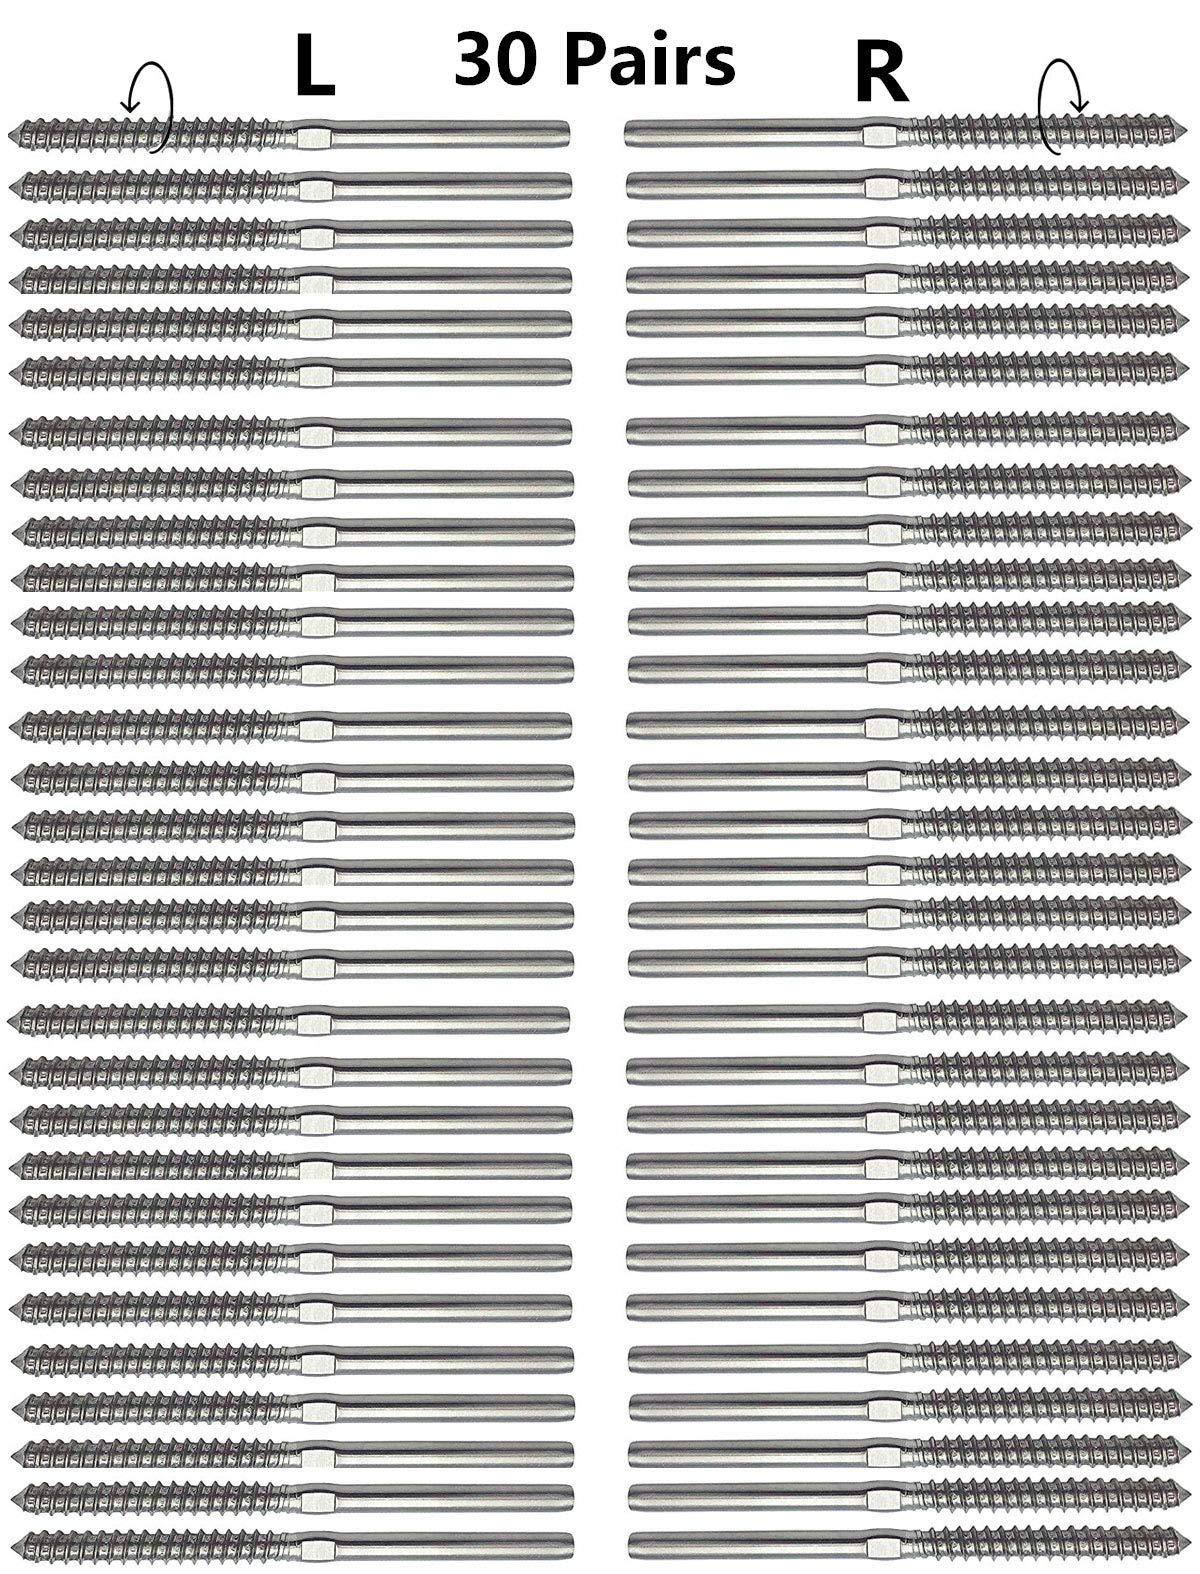 Senmit Swage Lag Screws Left & Right 60 Pack for 1/8'' Cable Railing, 316 Stainless Steel Stair Deck Railing Wood Post Balusters System 30 Pairs by Senmit